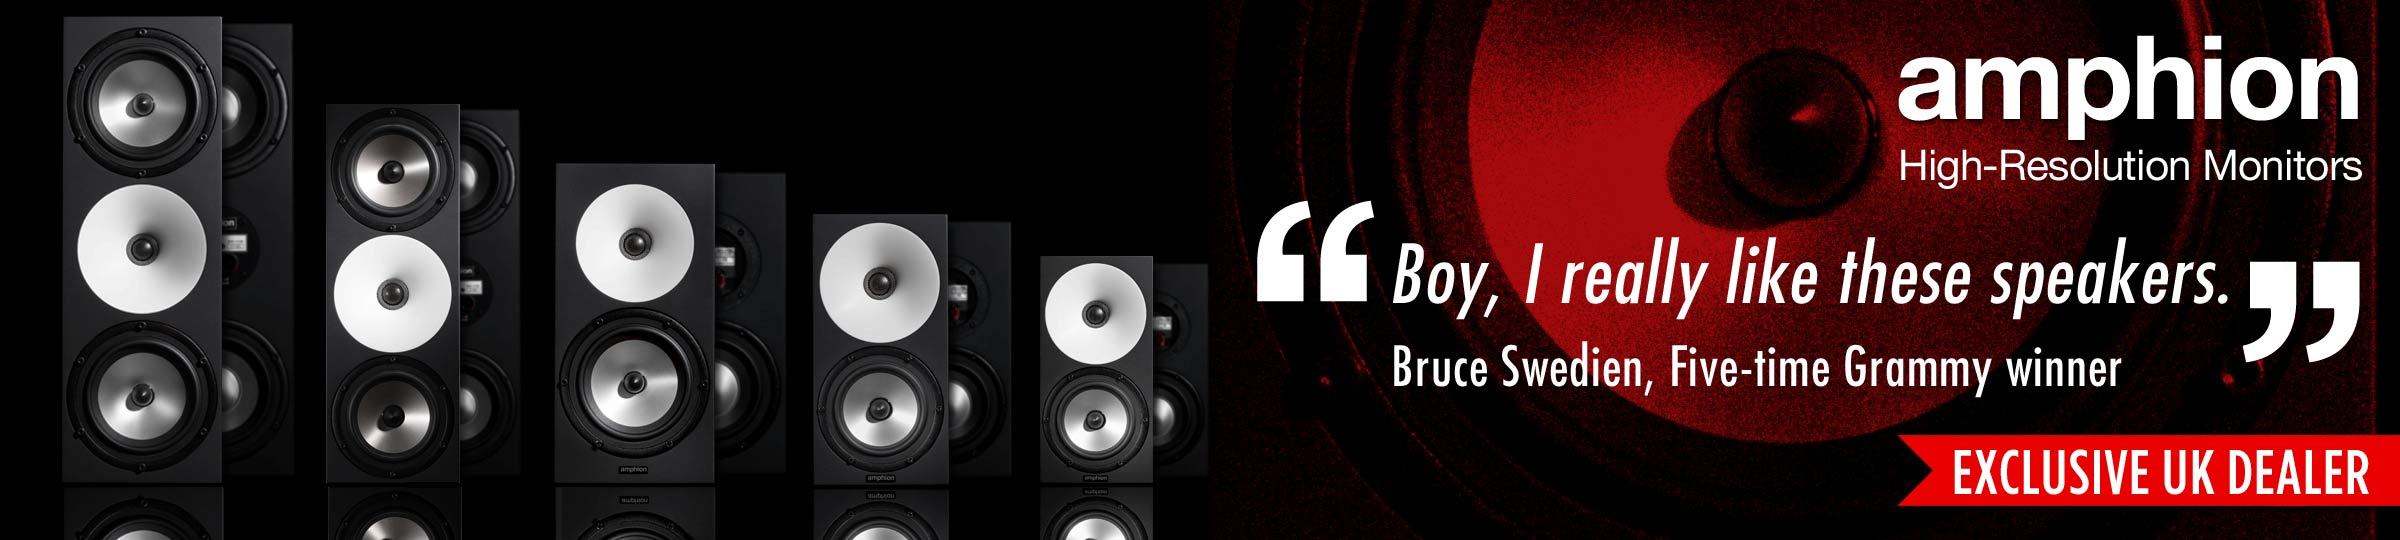 Amphion Studio Monitors - UK Exclusive